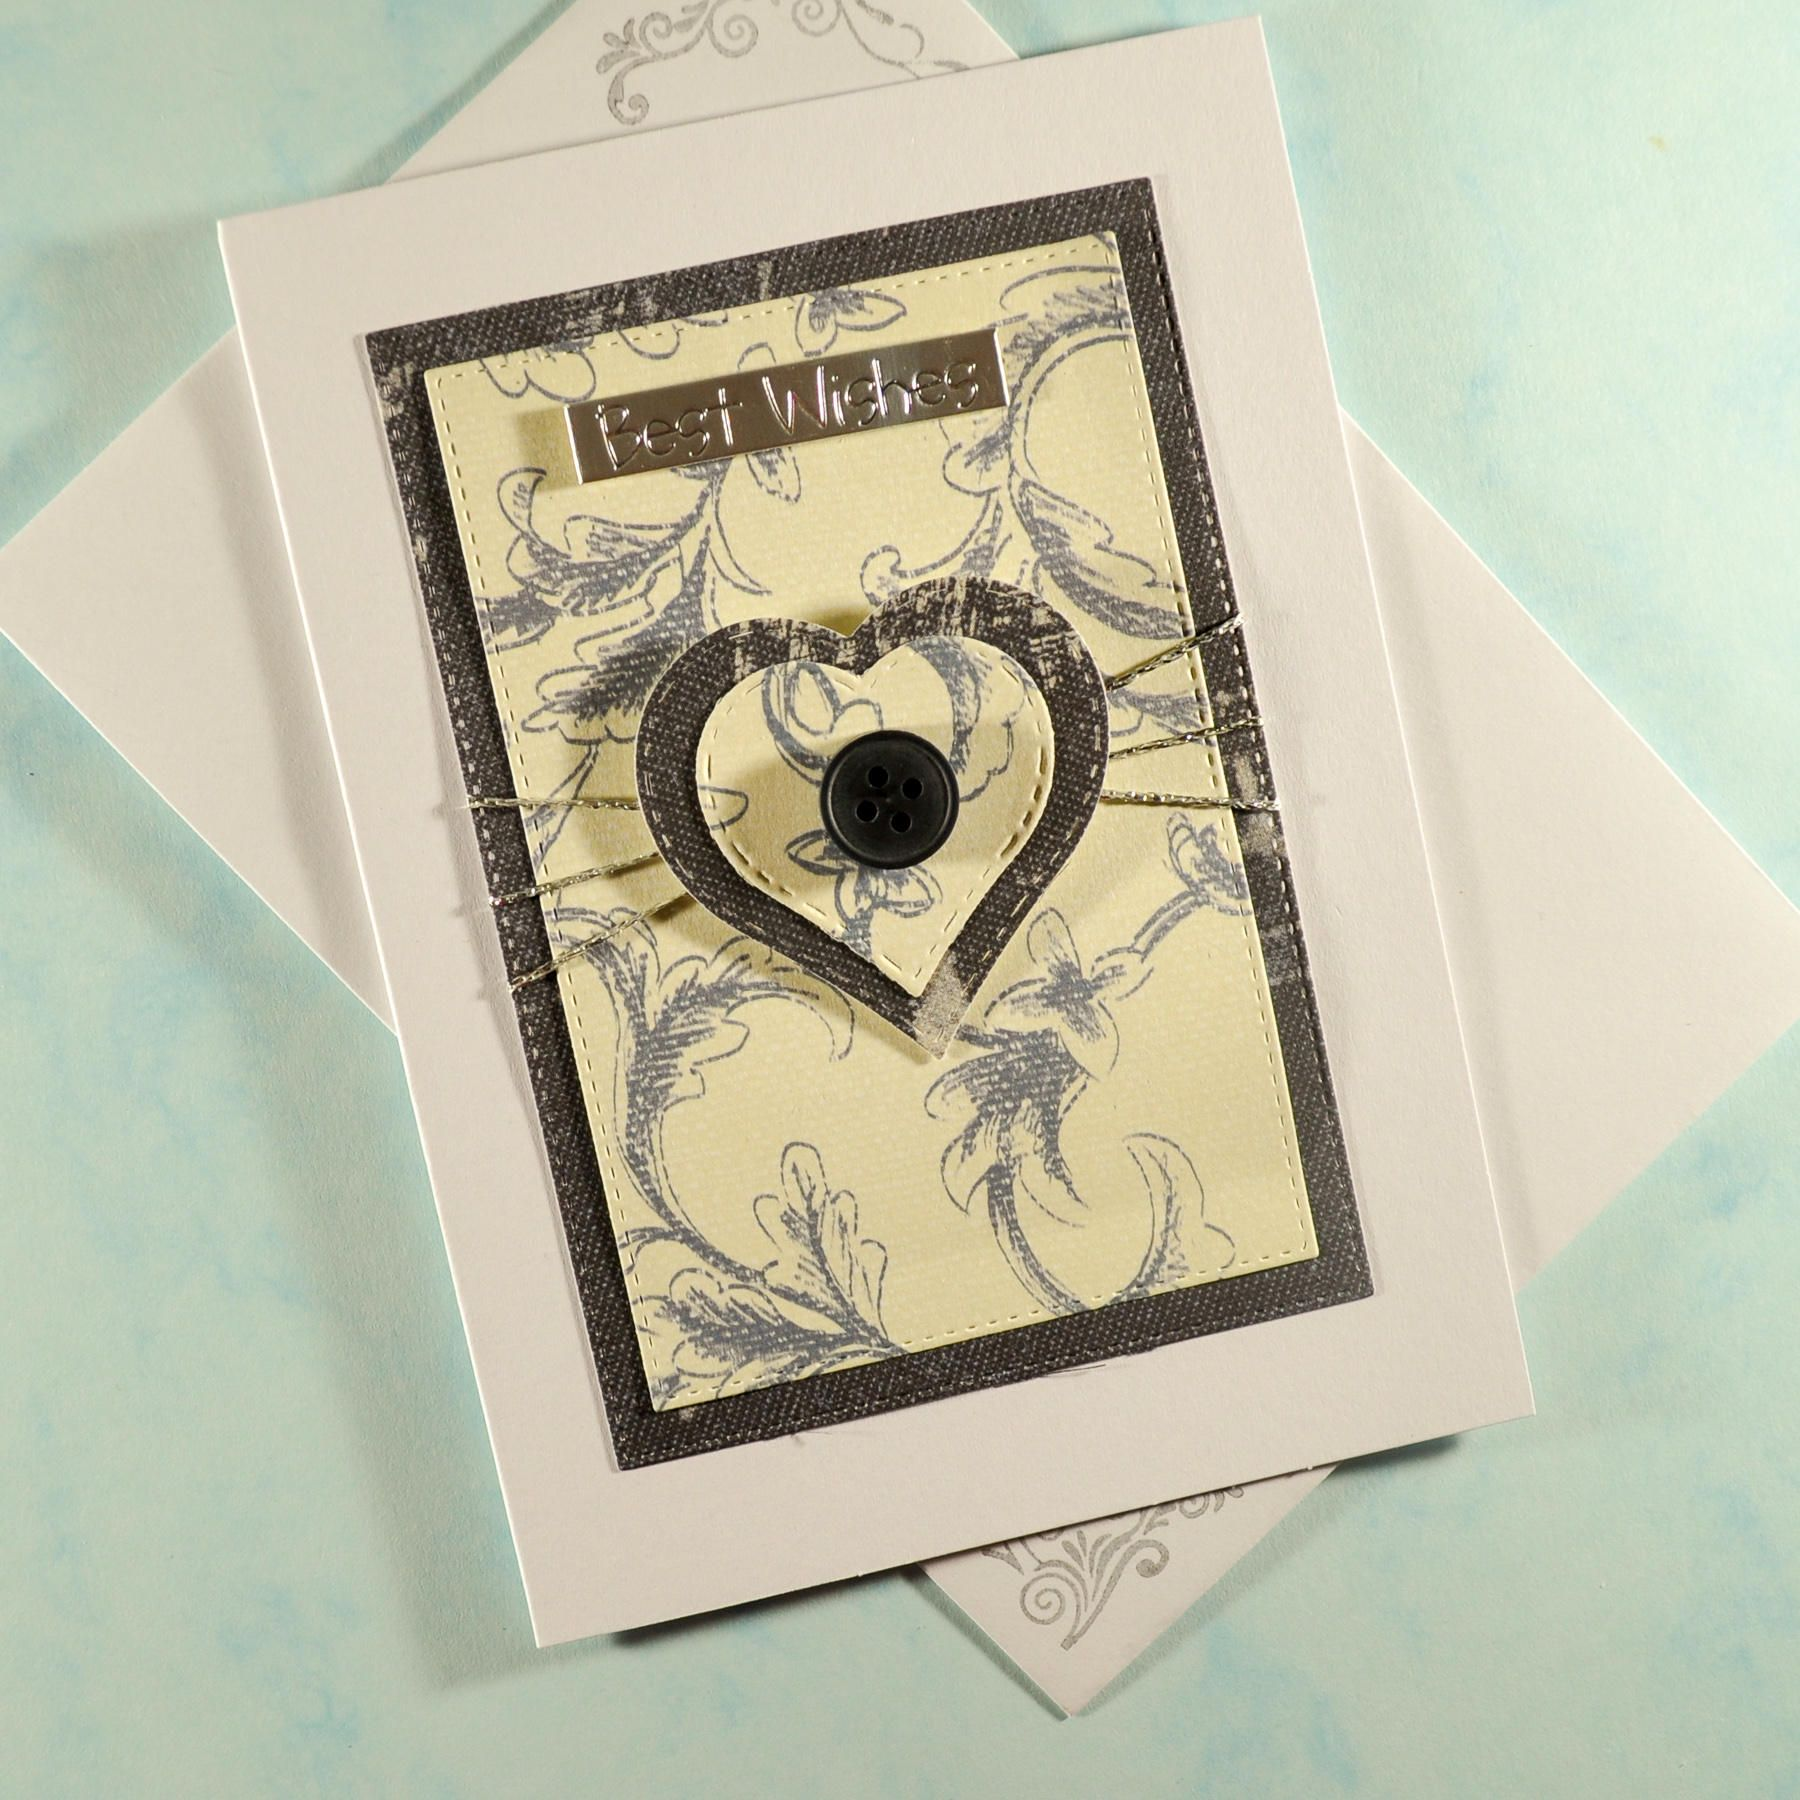 Best Wishes Birthday Card For Her Handmade Greeting Gay Bday Fiance Wife By